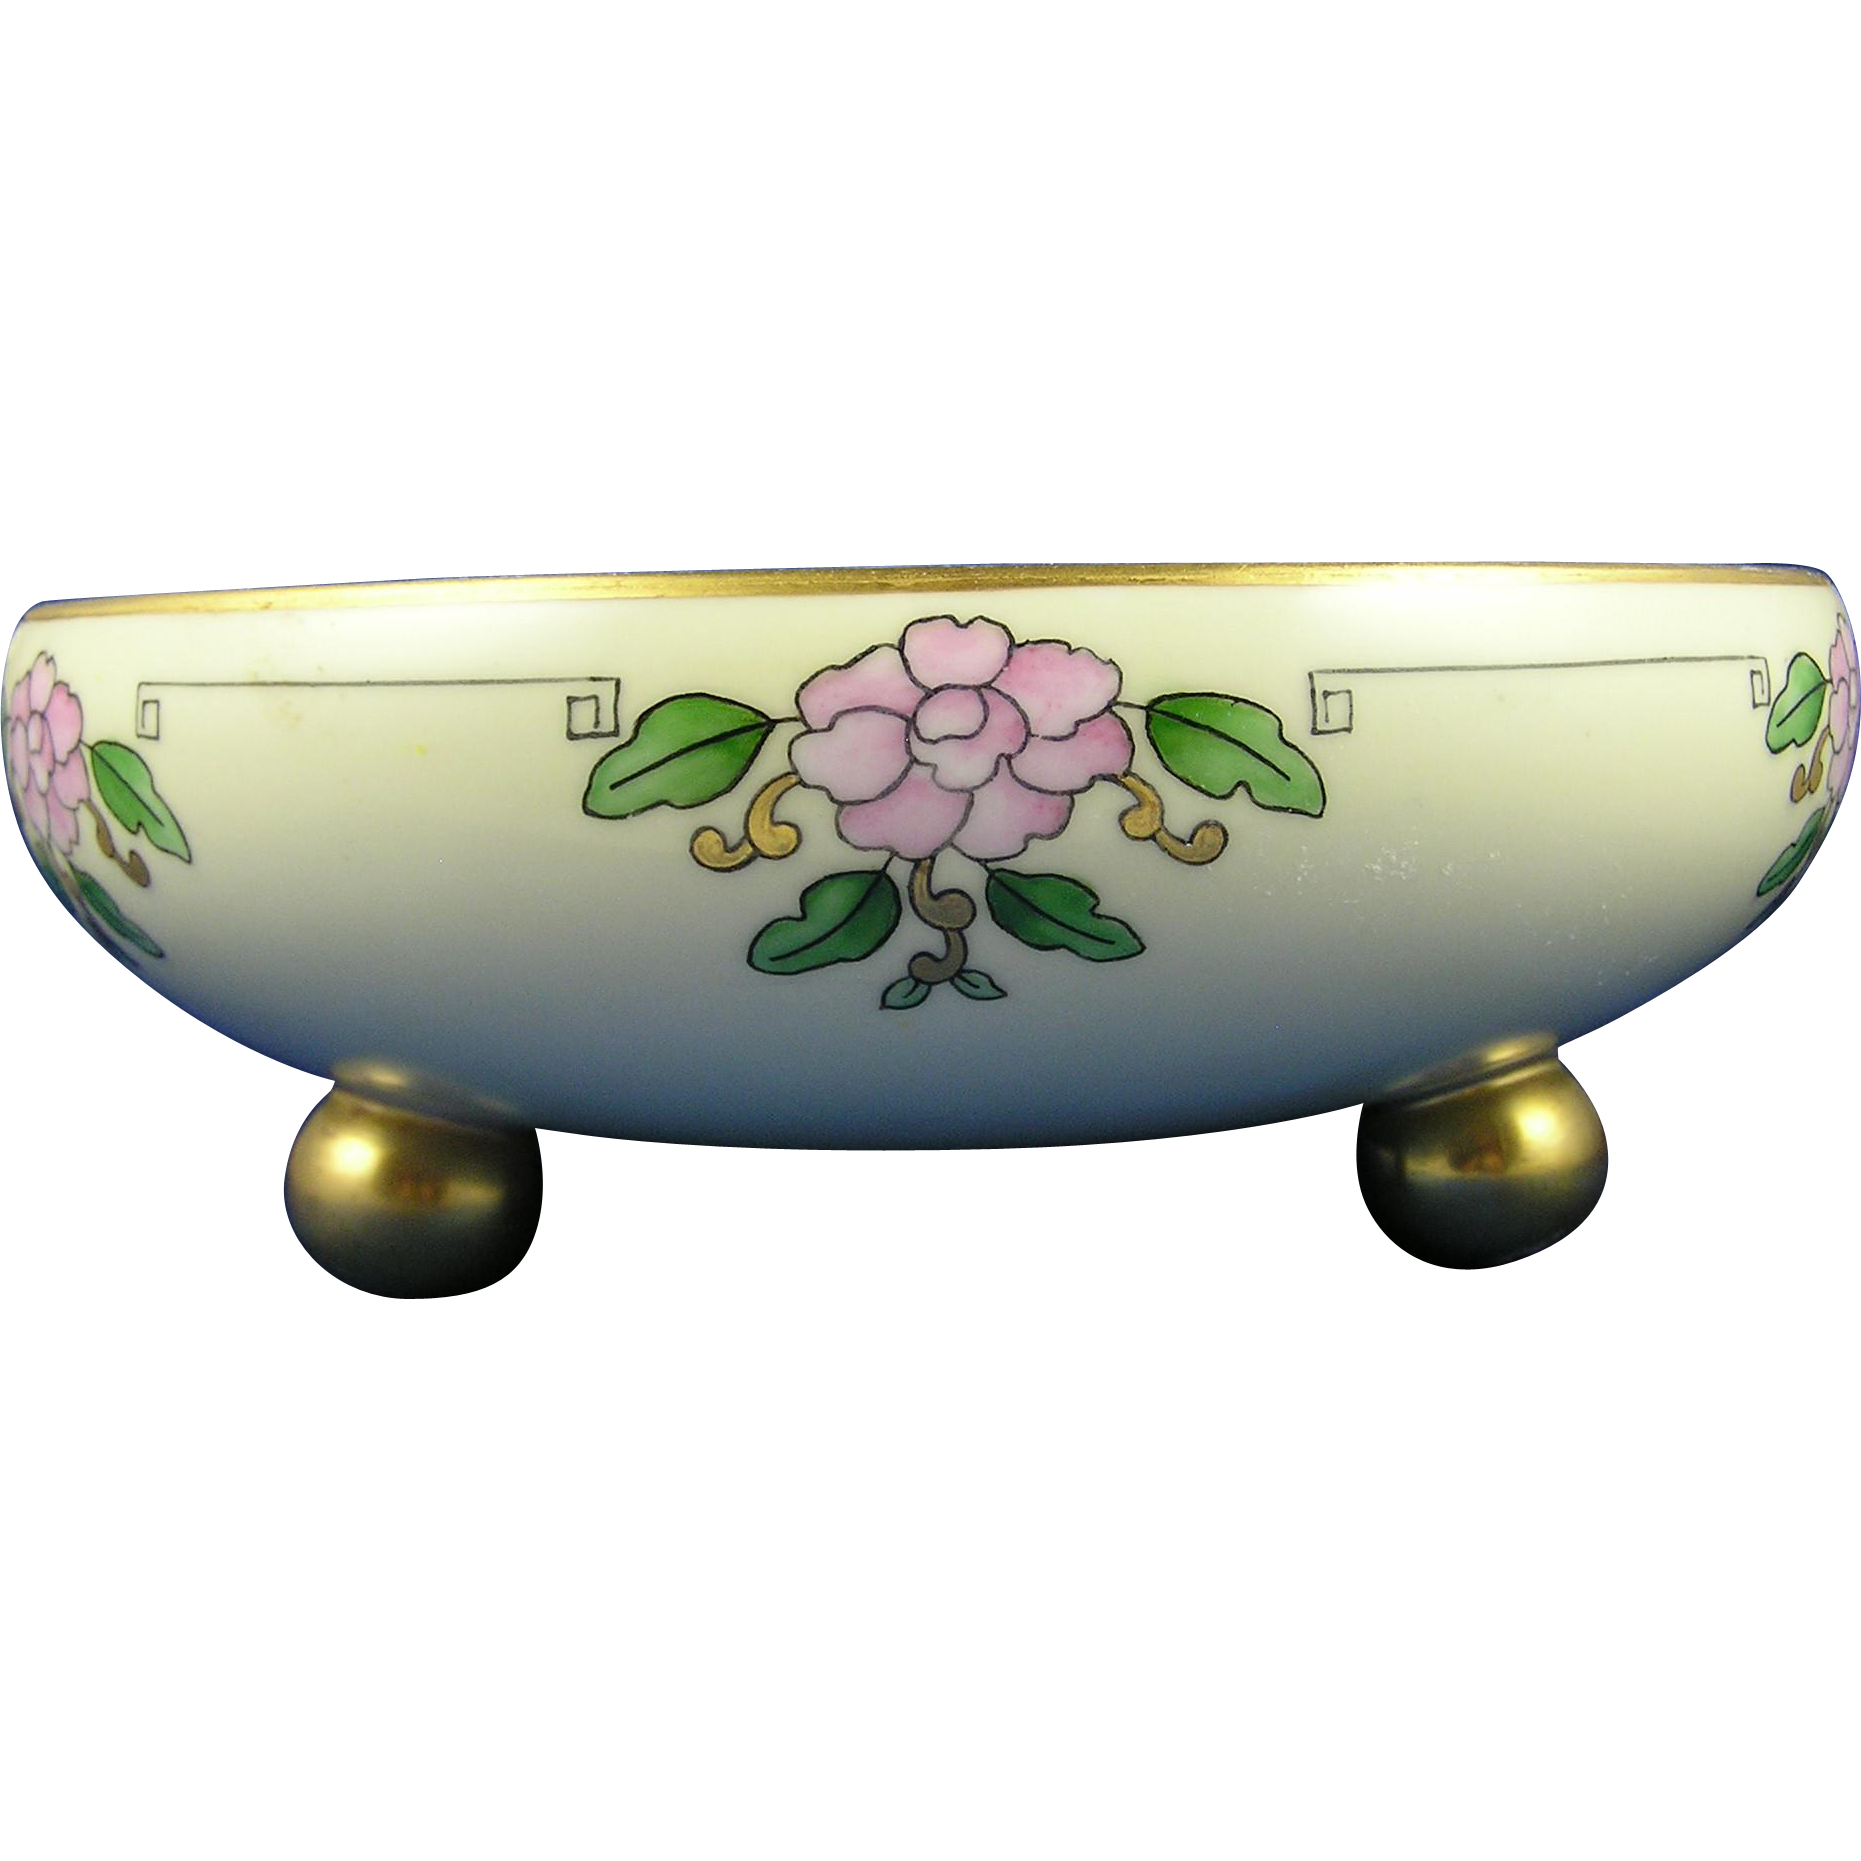 Tressemann & Vogt (T&V) Limoges Arts & Crafts Pink Floral Motif Footed Centerpiece Bowl (c.1892-1907)